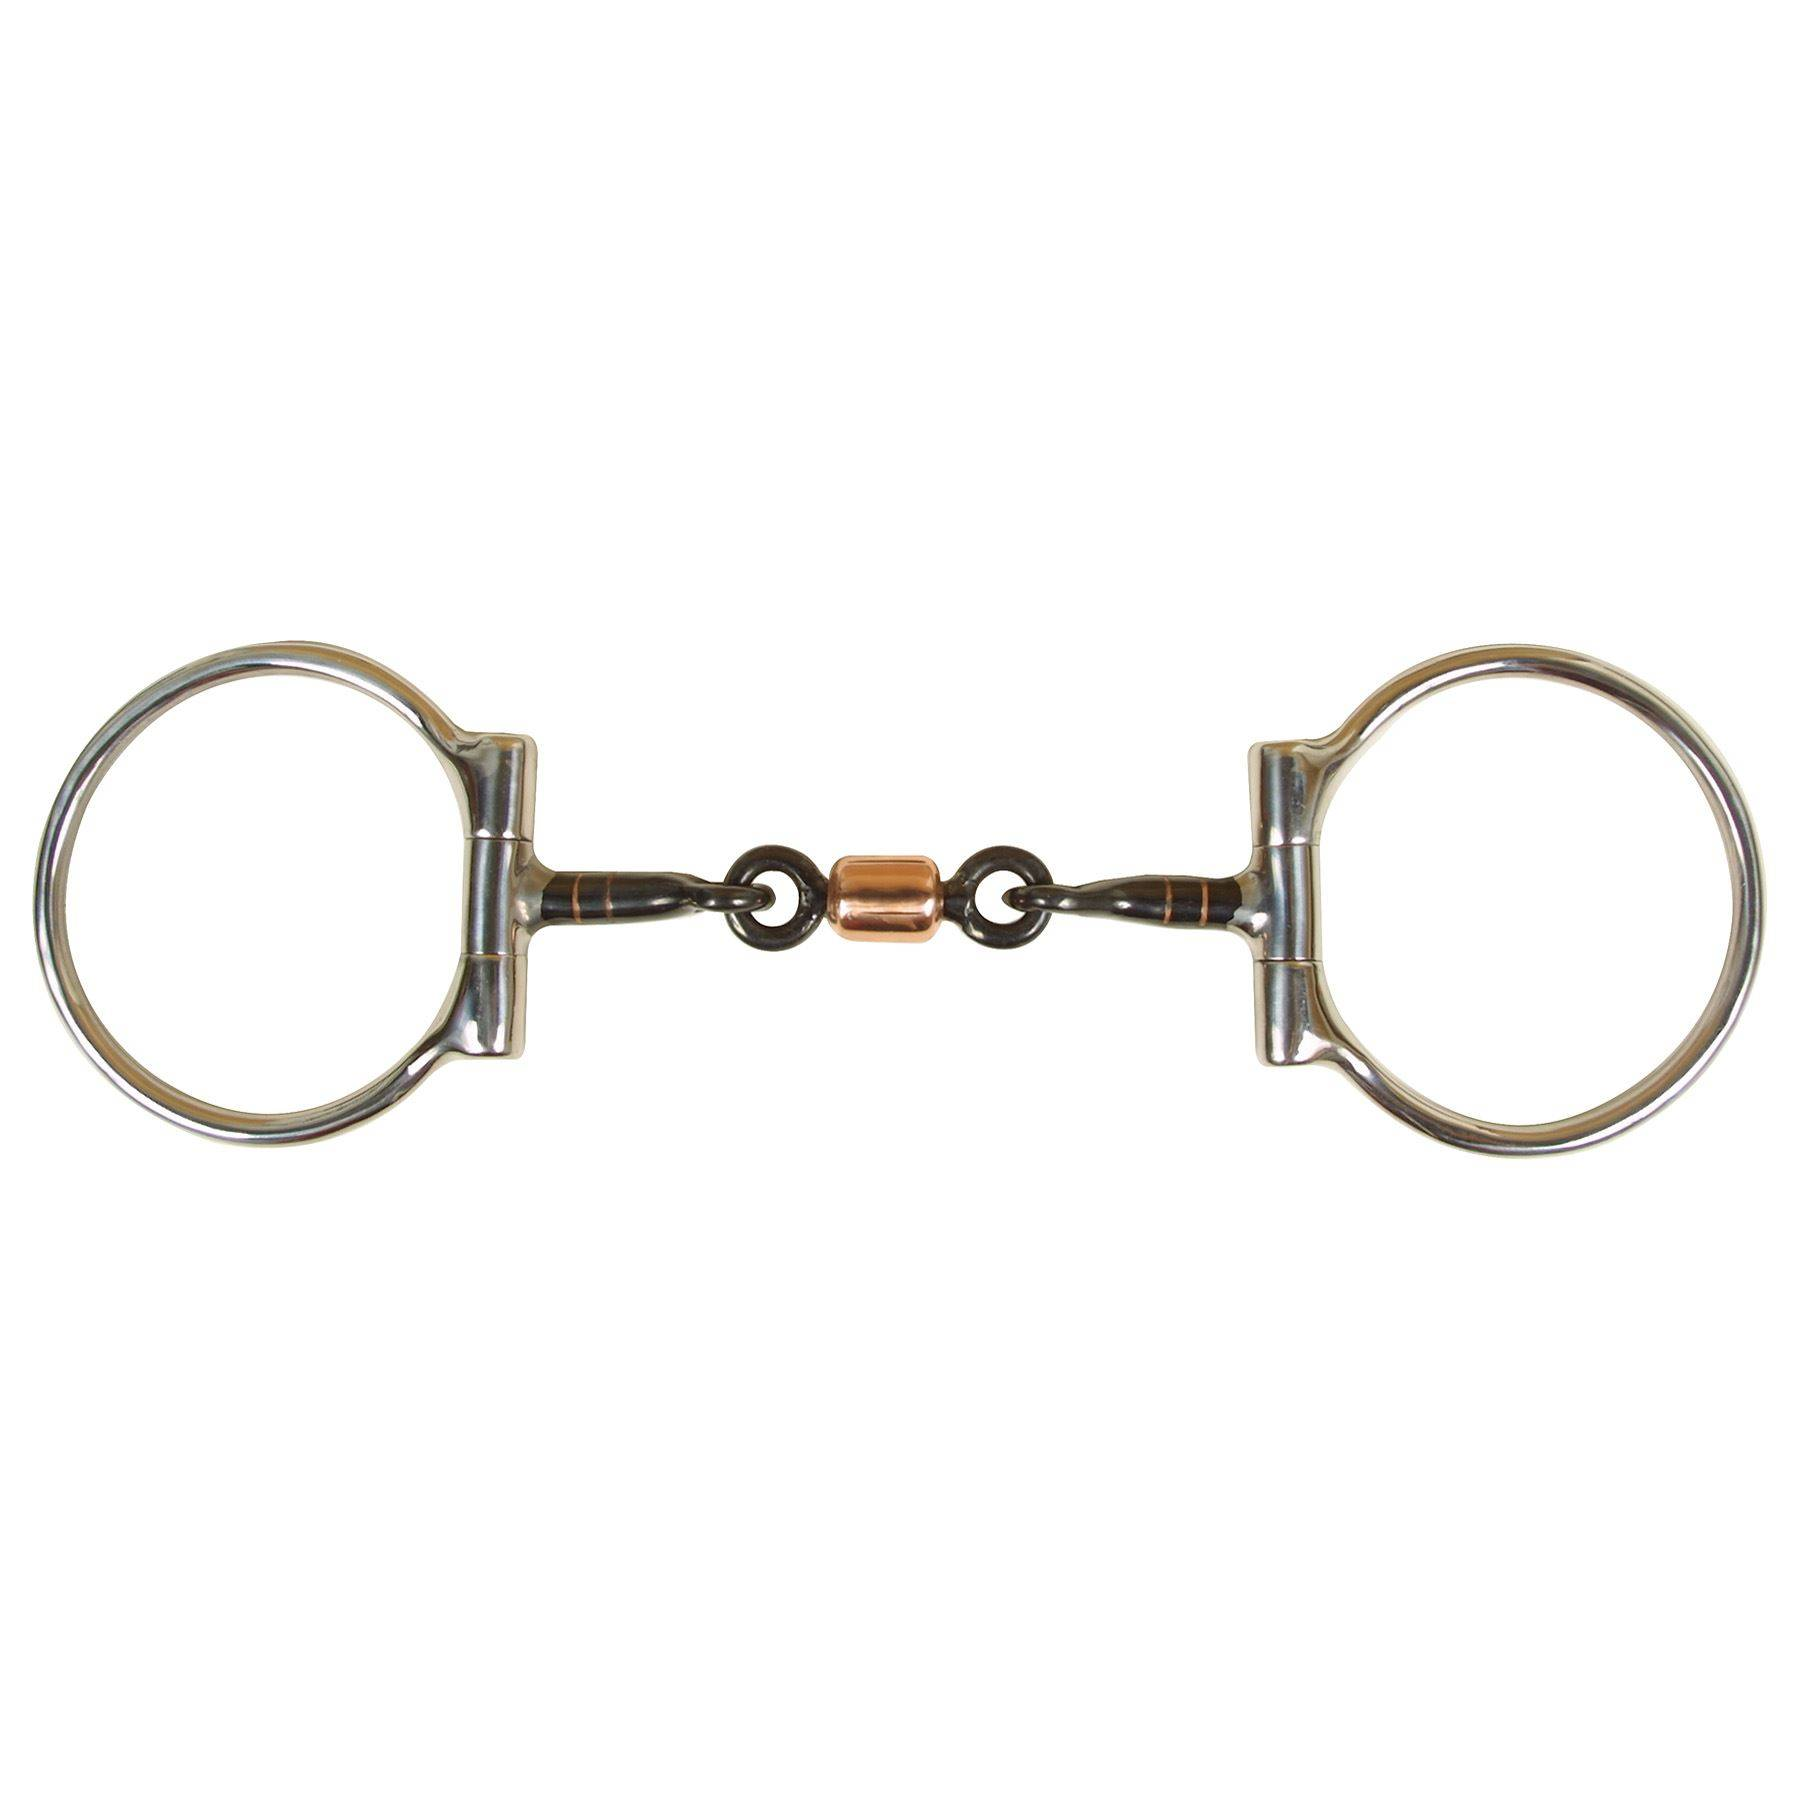 Fes D Ring Sweet Iron Snaffle Bit With Copper Roller In D